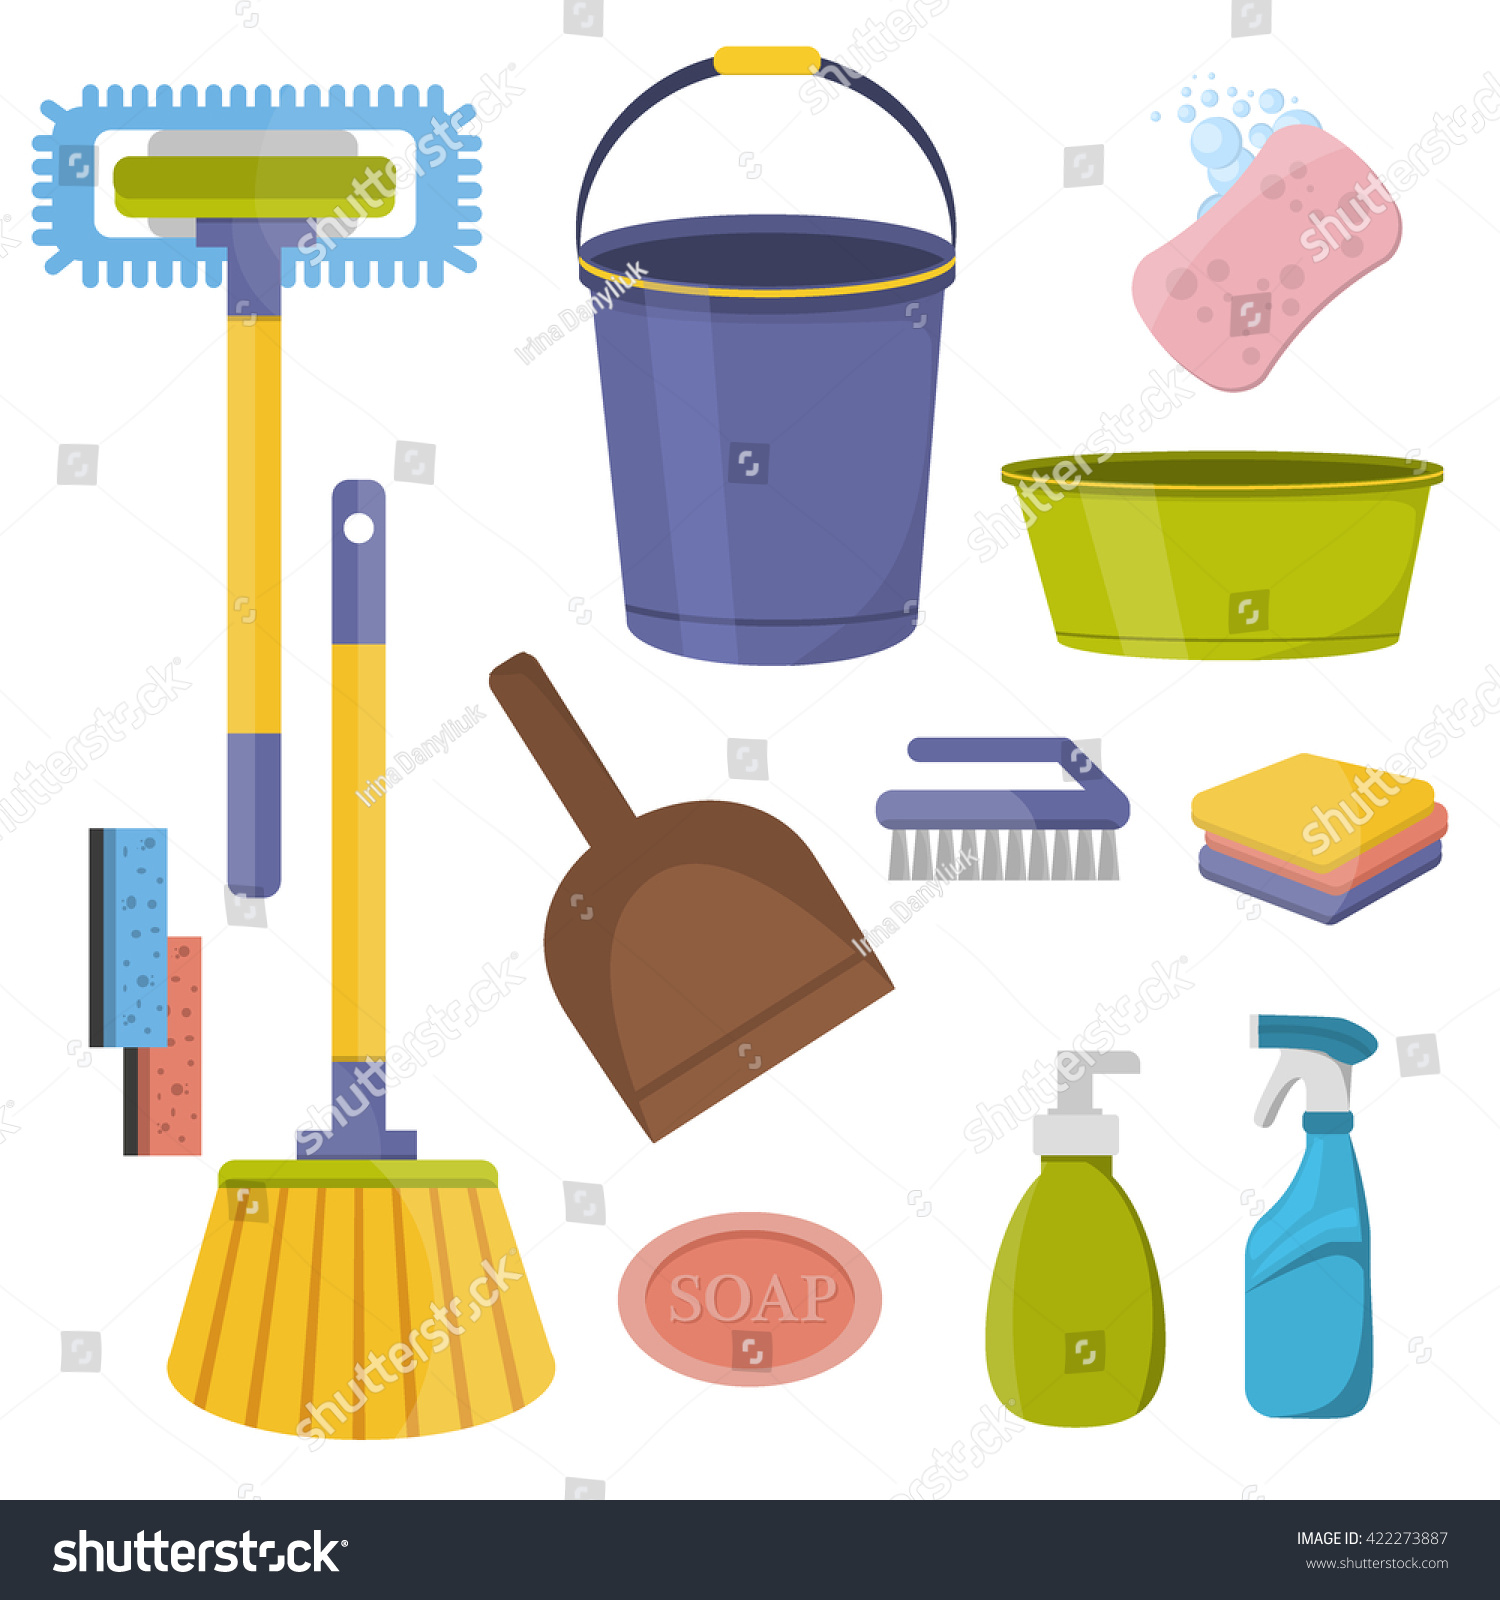 Vector set cleaning tools flat design stock vector 422273887 shutterstock - Household tools ...